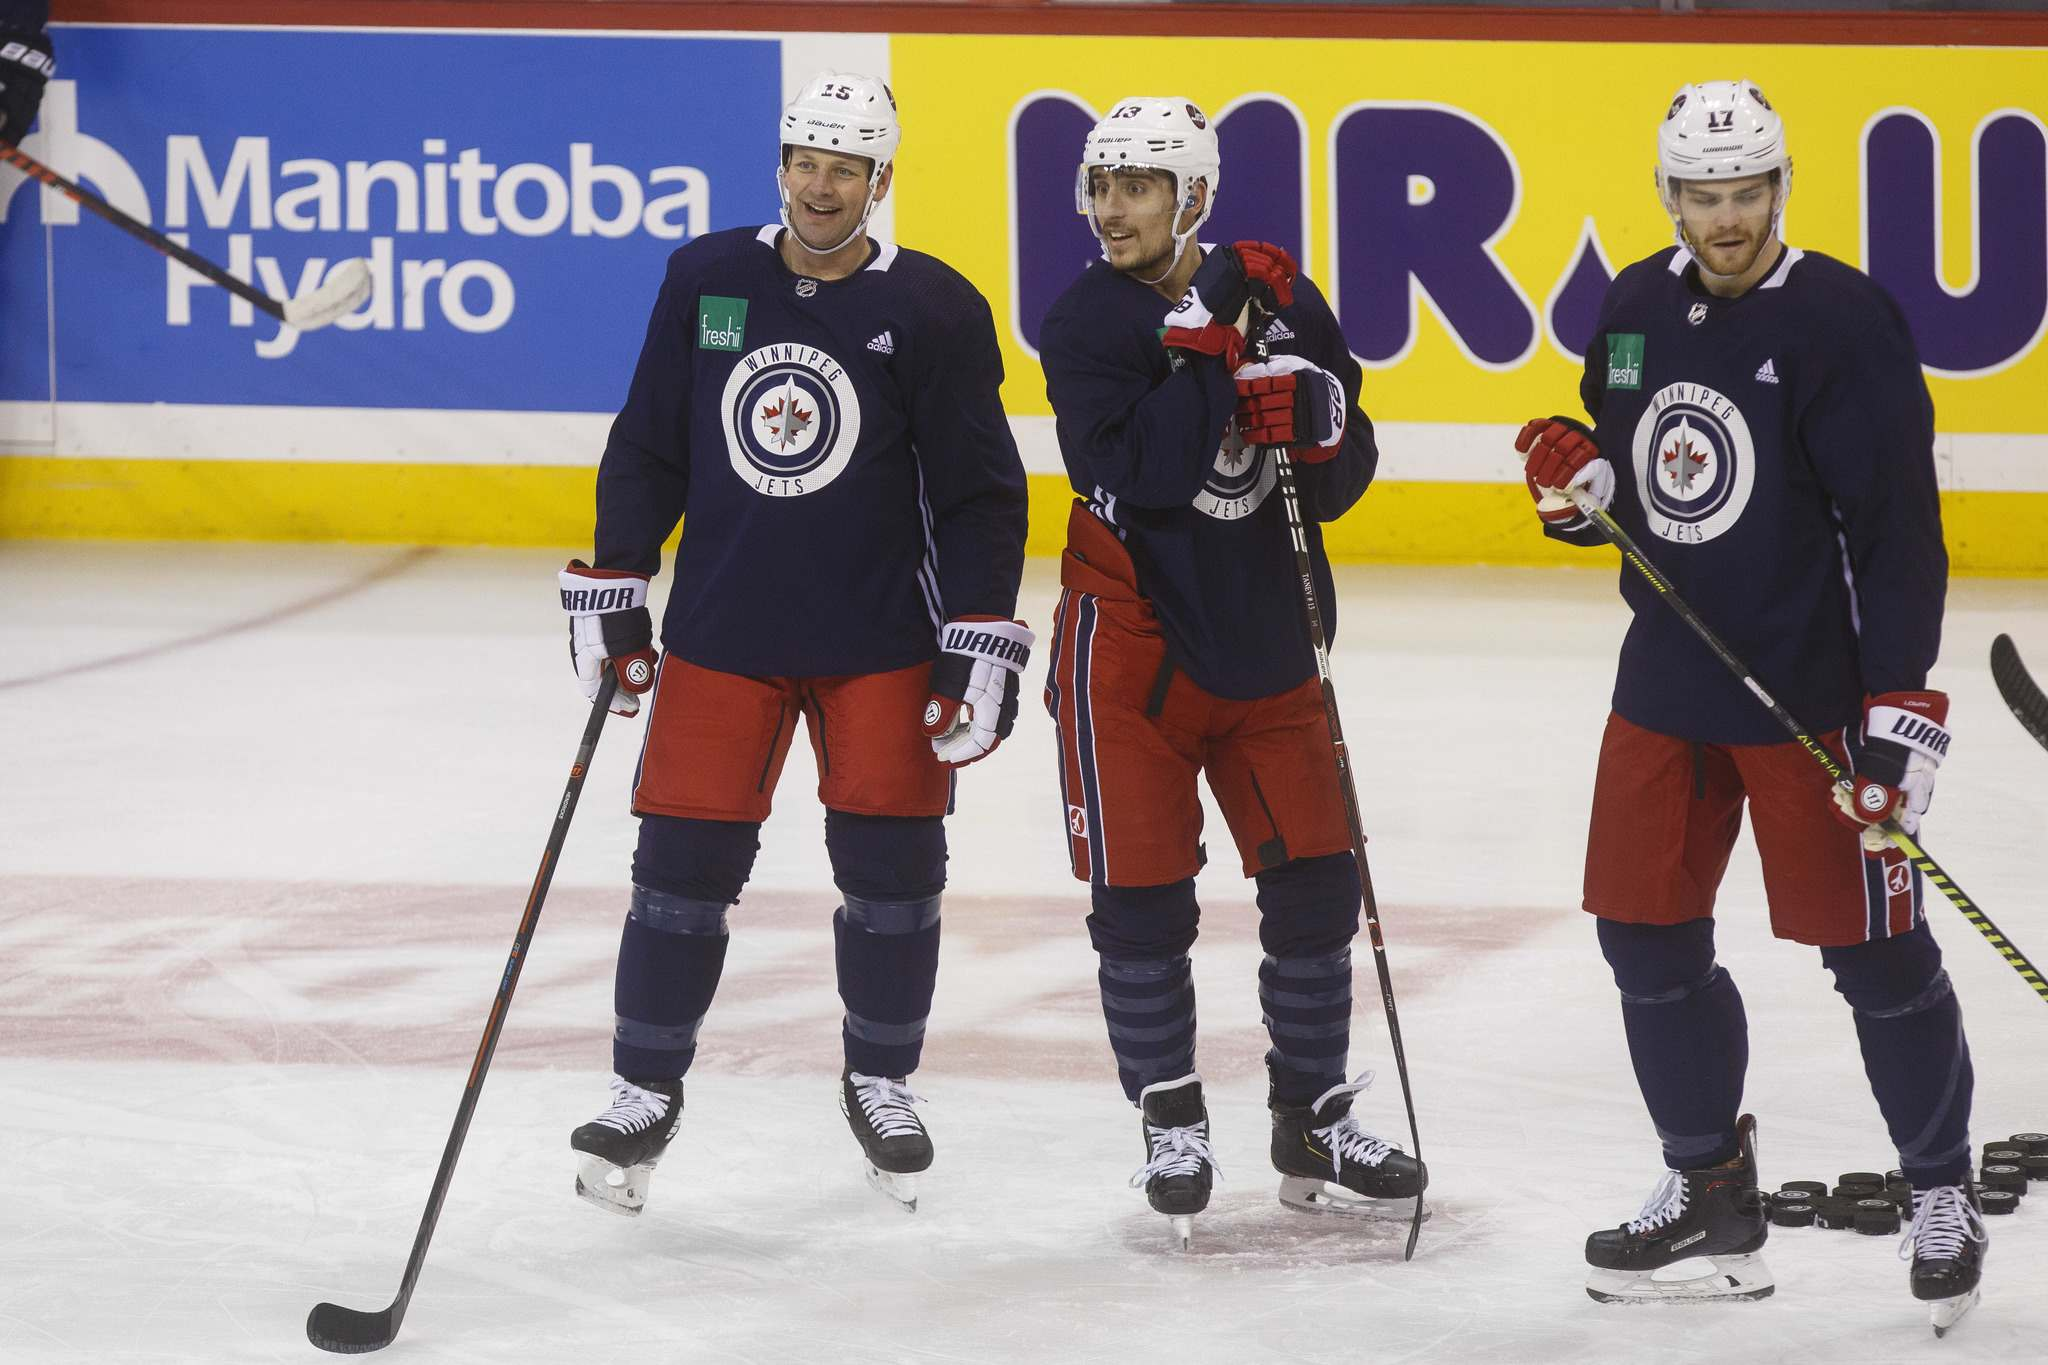 From left: Matt Hendricks, Brandon Tanev and Adam Lowry during a pre-game skate in February at Bell MTS Place. (Mike Deal / Free Press files)